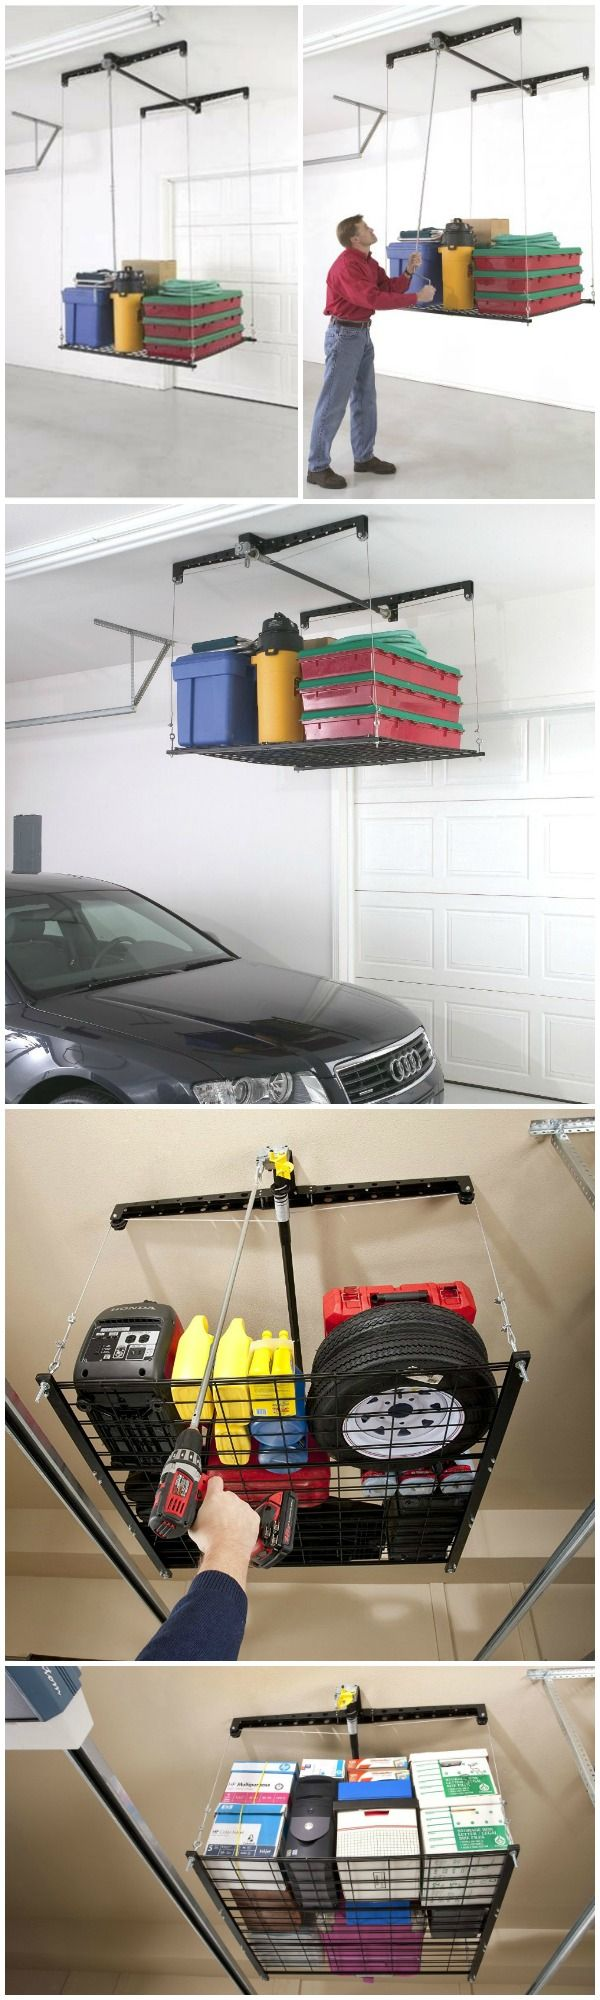 overhead of lets items ladder or pin is out ceiling heavylift a lift load ceilings garage racor space without mounted your effort storage way and elevator that increases the you much